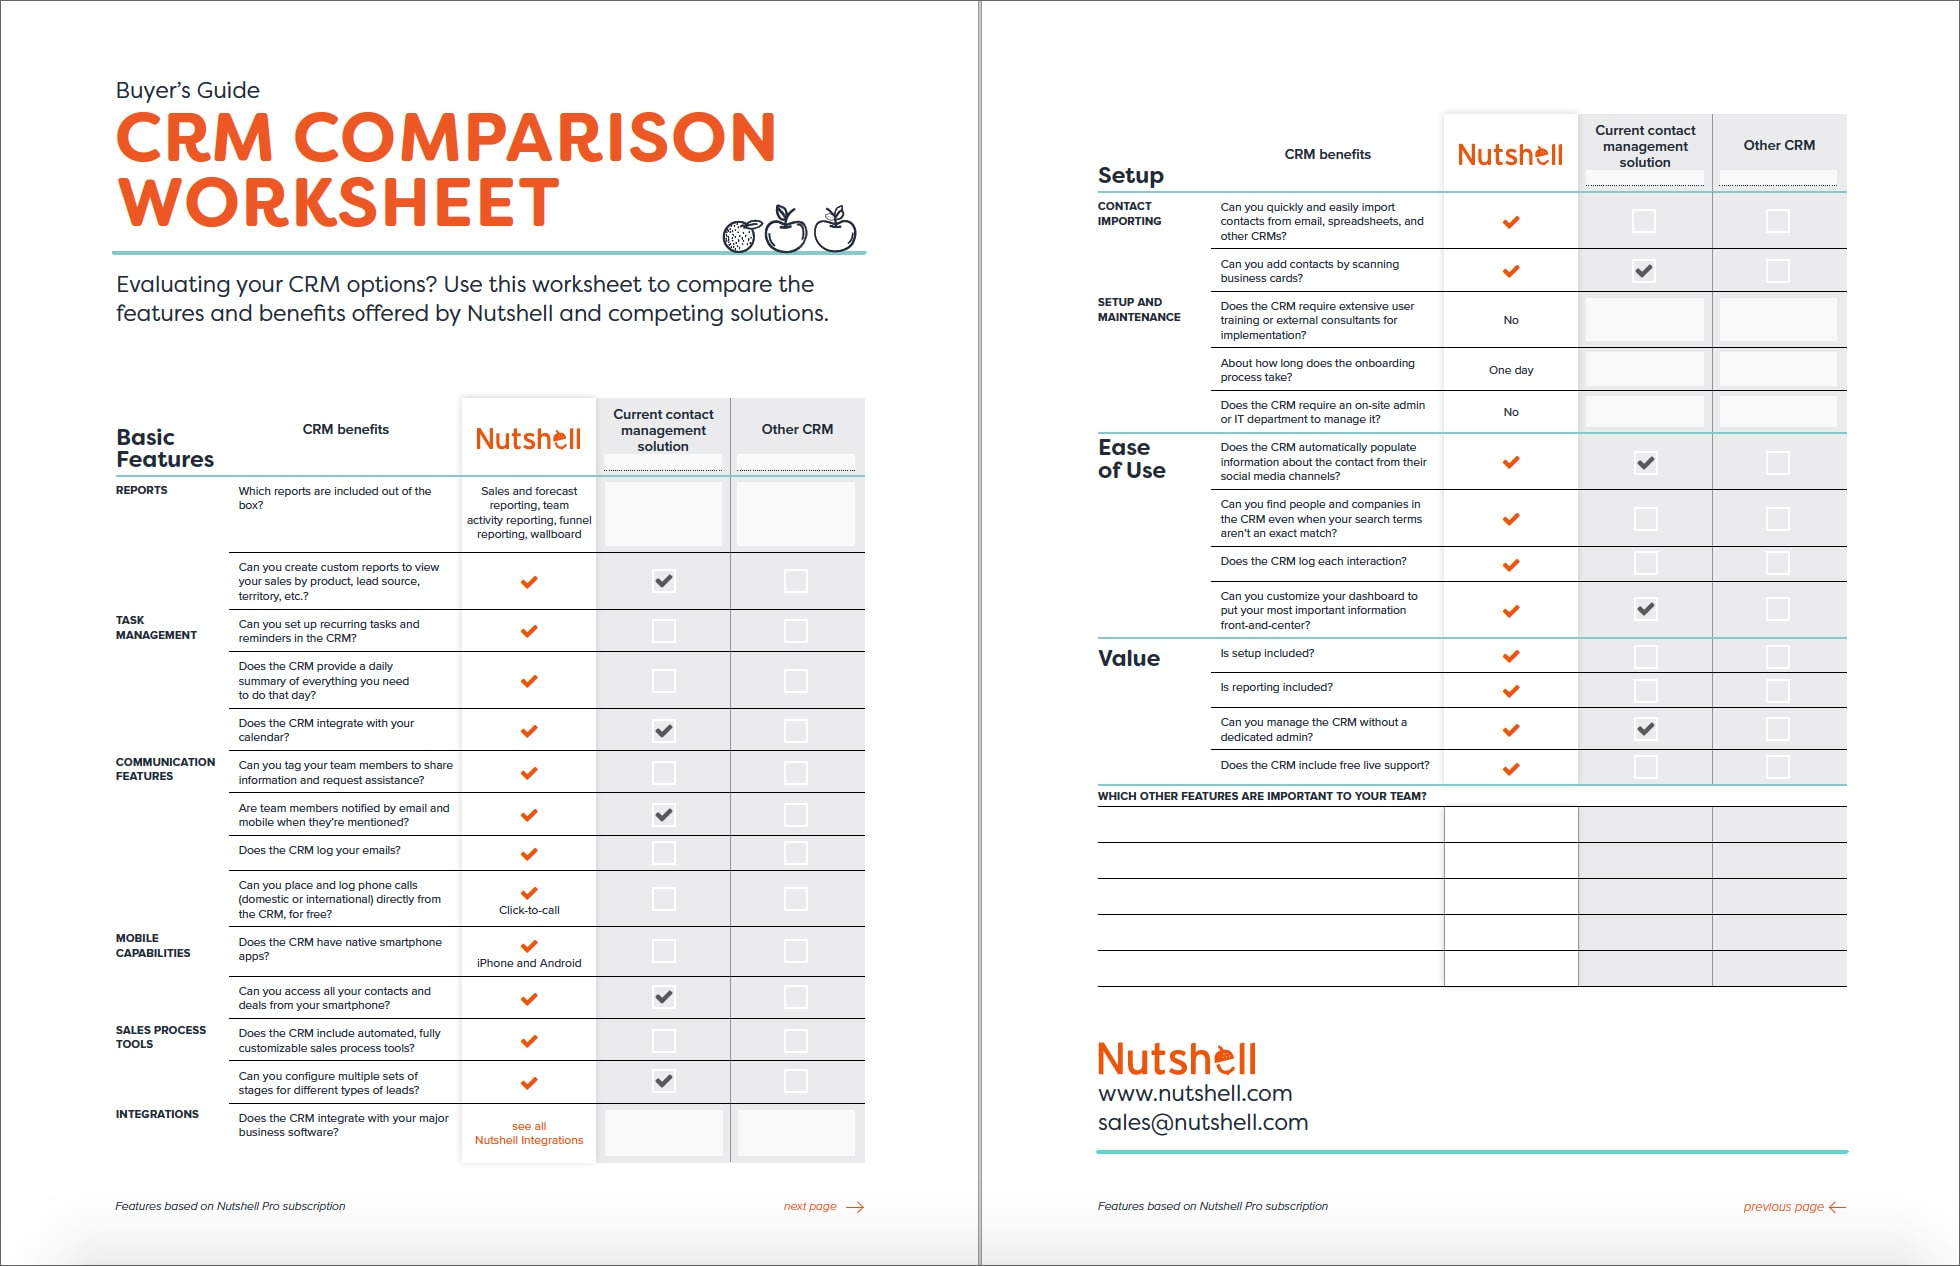 Credit Card Comparison Spreadsheet In Crm Comparison Worksheet Nutshell Free Crm Resources Db